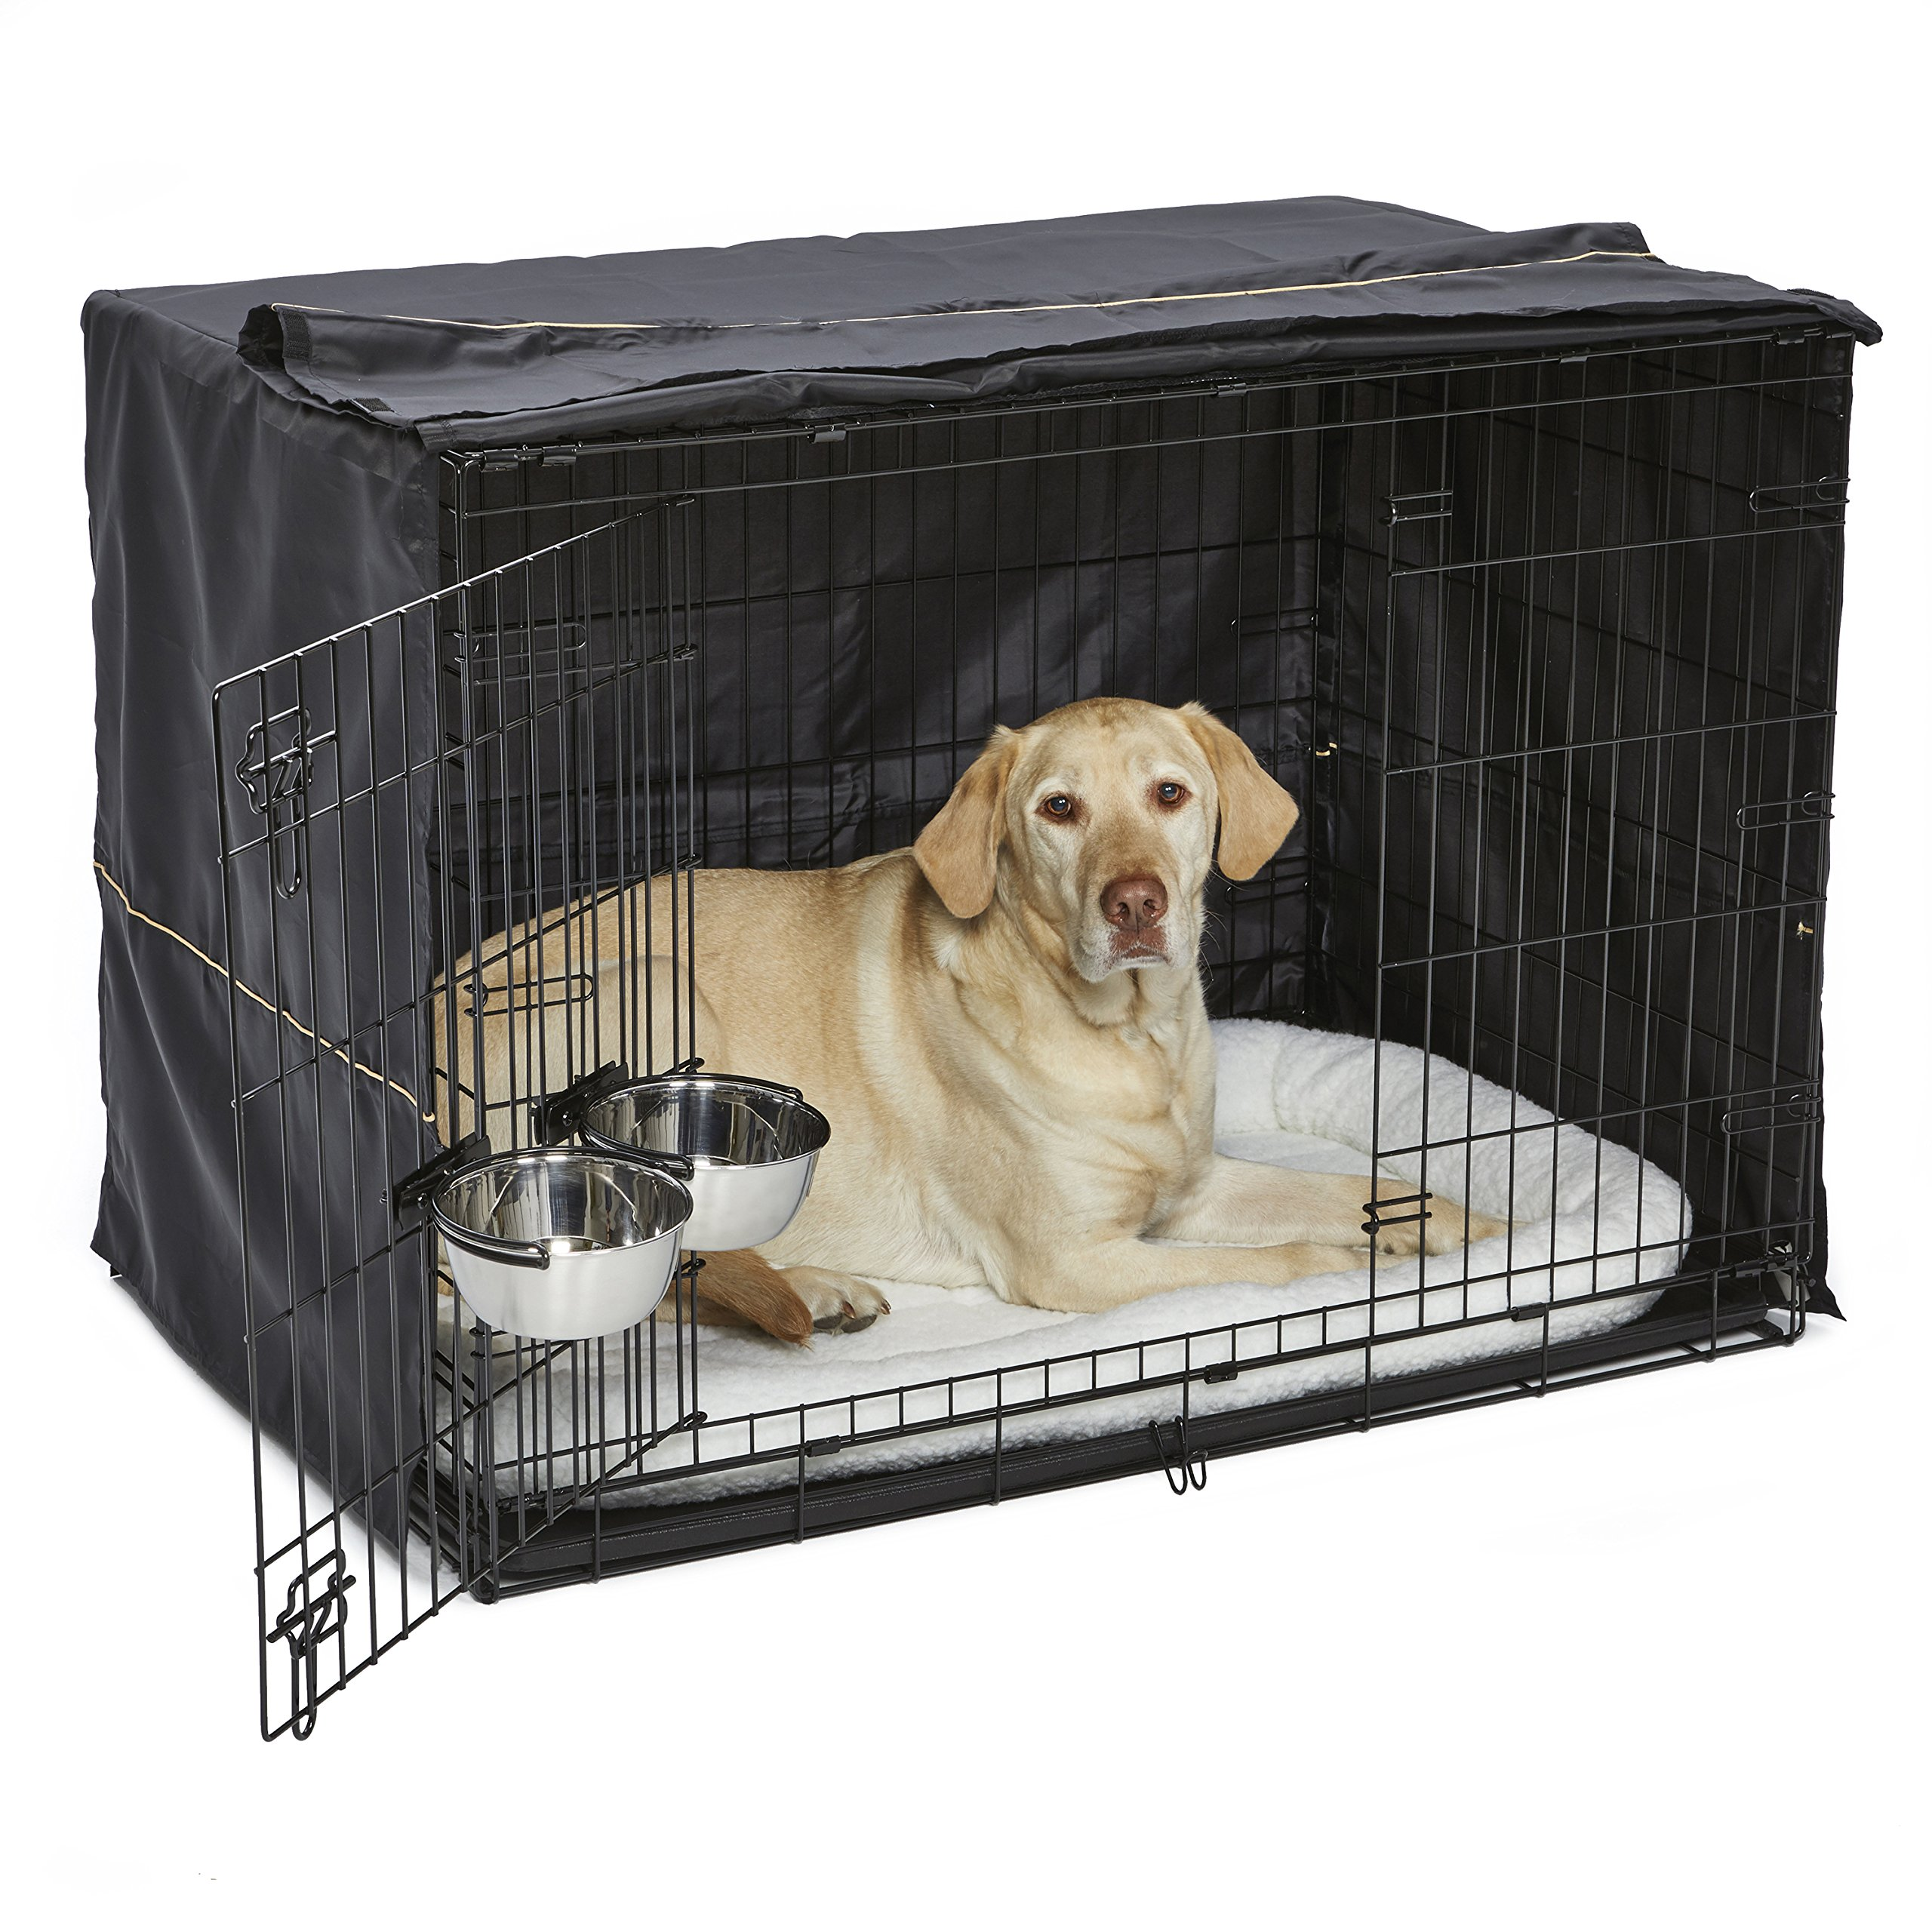 iCrate Dog Crate Starter Kit | 42-Inch Dog Crate Kit Ideal for LARGE DOG BREEDS Weighing 71 - 90 Pounds | Includes Dog Crate, Pet Bed, 2 Dog Bowls & Dog Crate Cover | 1-YEAR MIDWEST QUALITY GUARANTEE by MidWest Homes for Pets